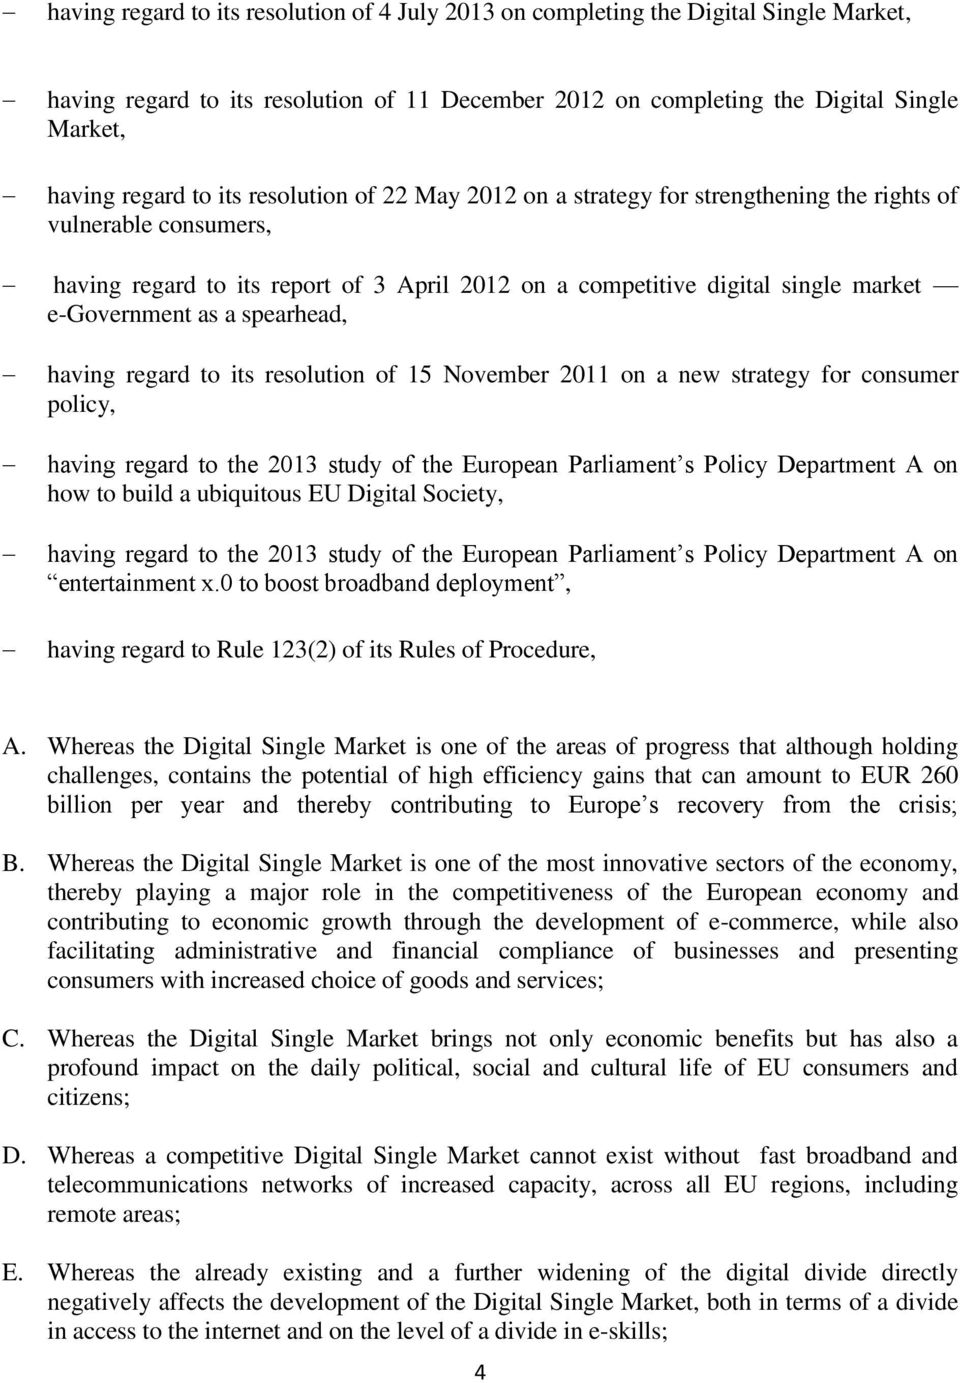 spearhead, having regard to its resolution of 15 November 2011 on a new strategy for consumer policy, having regard to the 2013 study of the European Parliament s Policy Department A on how to build